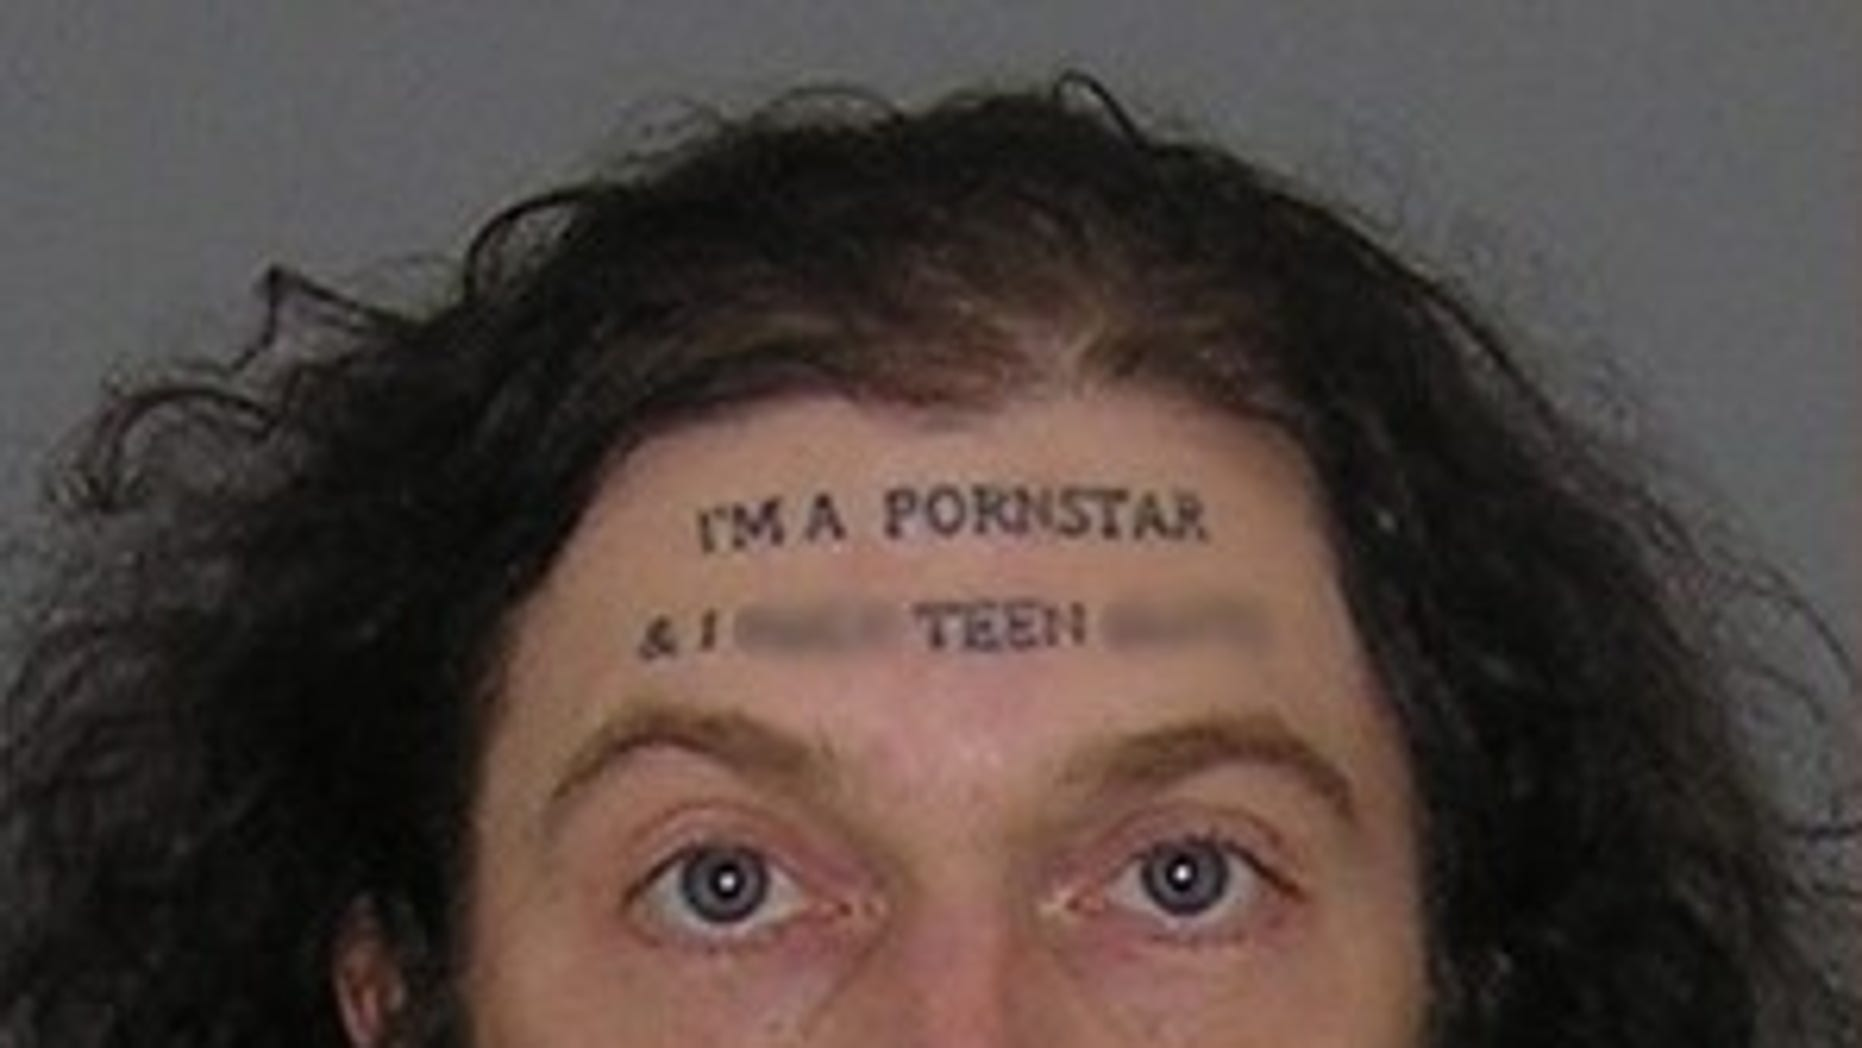 """Christopher Wilson, 37, who has """"I'm a pornstar"""" tattooed to his forehead, has been charged with sexual imposition and assault."""